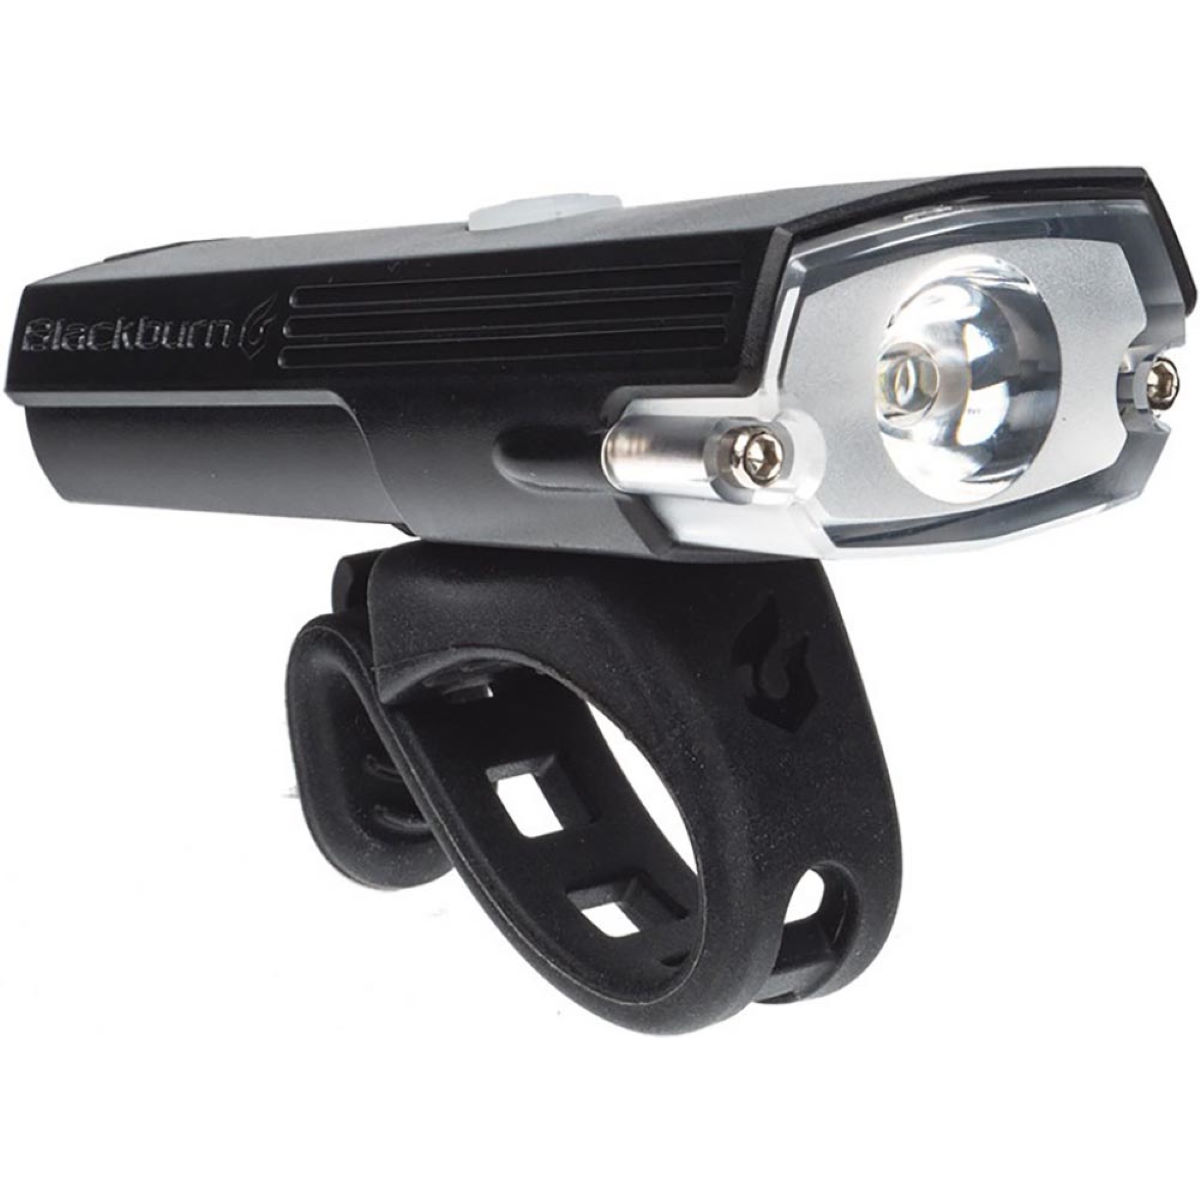 Blackburn Dayblazer 400 Front Light - Luces delanteras